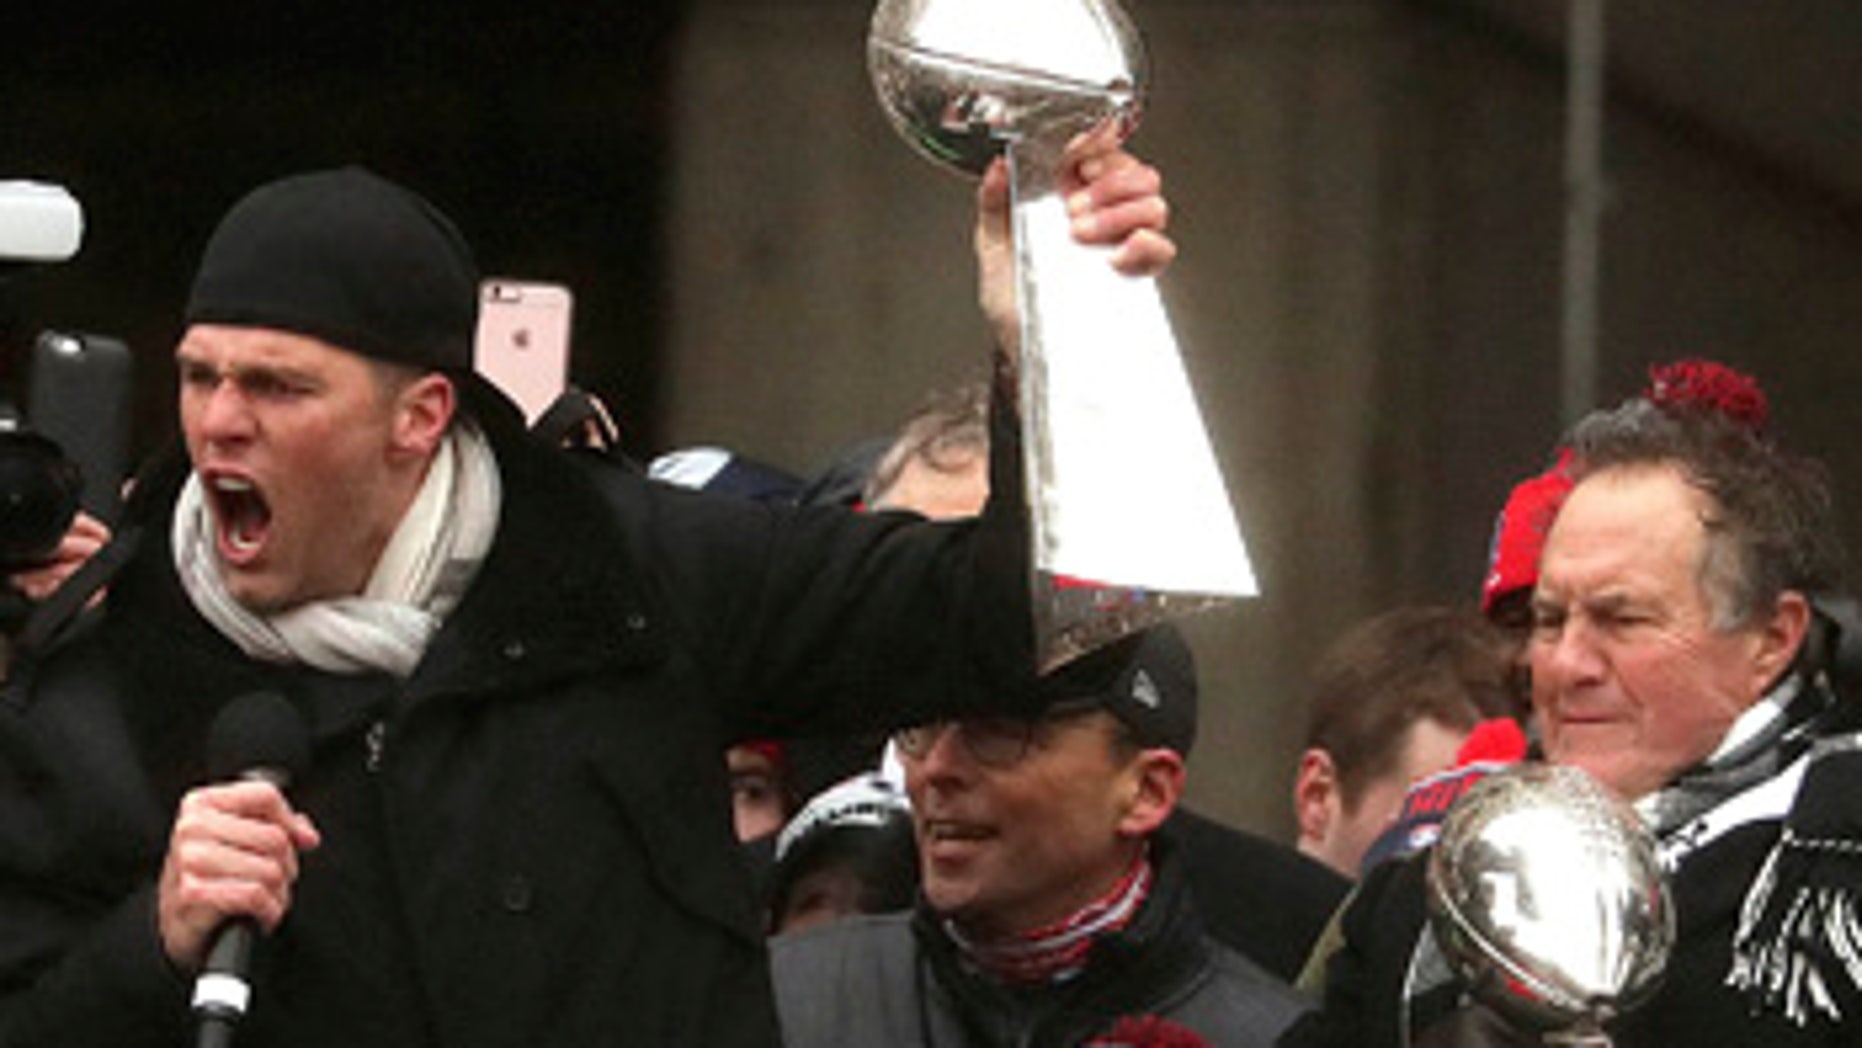 New England Patriots quarterback Tom Brady and head coach Bill Belichick hold Super Bowl trophies during a rally Tuesday, Feb. 7, 2017, in Boston to celebrate Sunday's 34-28 win over the Atlanta Falcons in the NFL Super Bowl 51 football game in Houston.  (Barry Chin /The Boston Globe via AP, Pool)